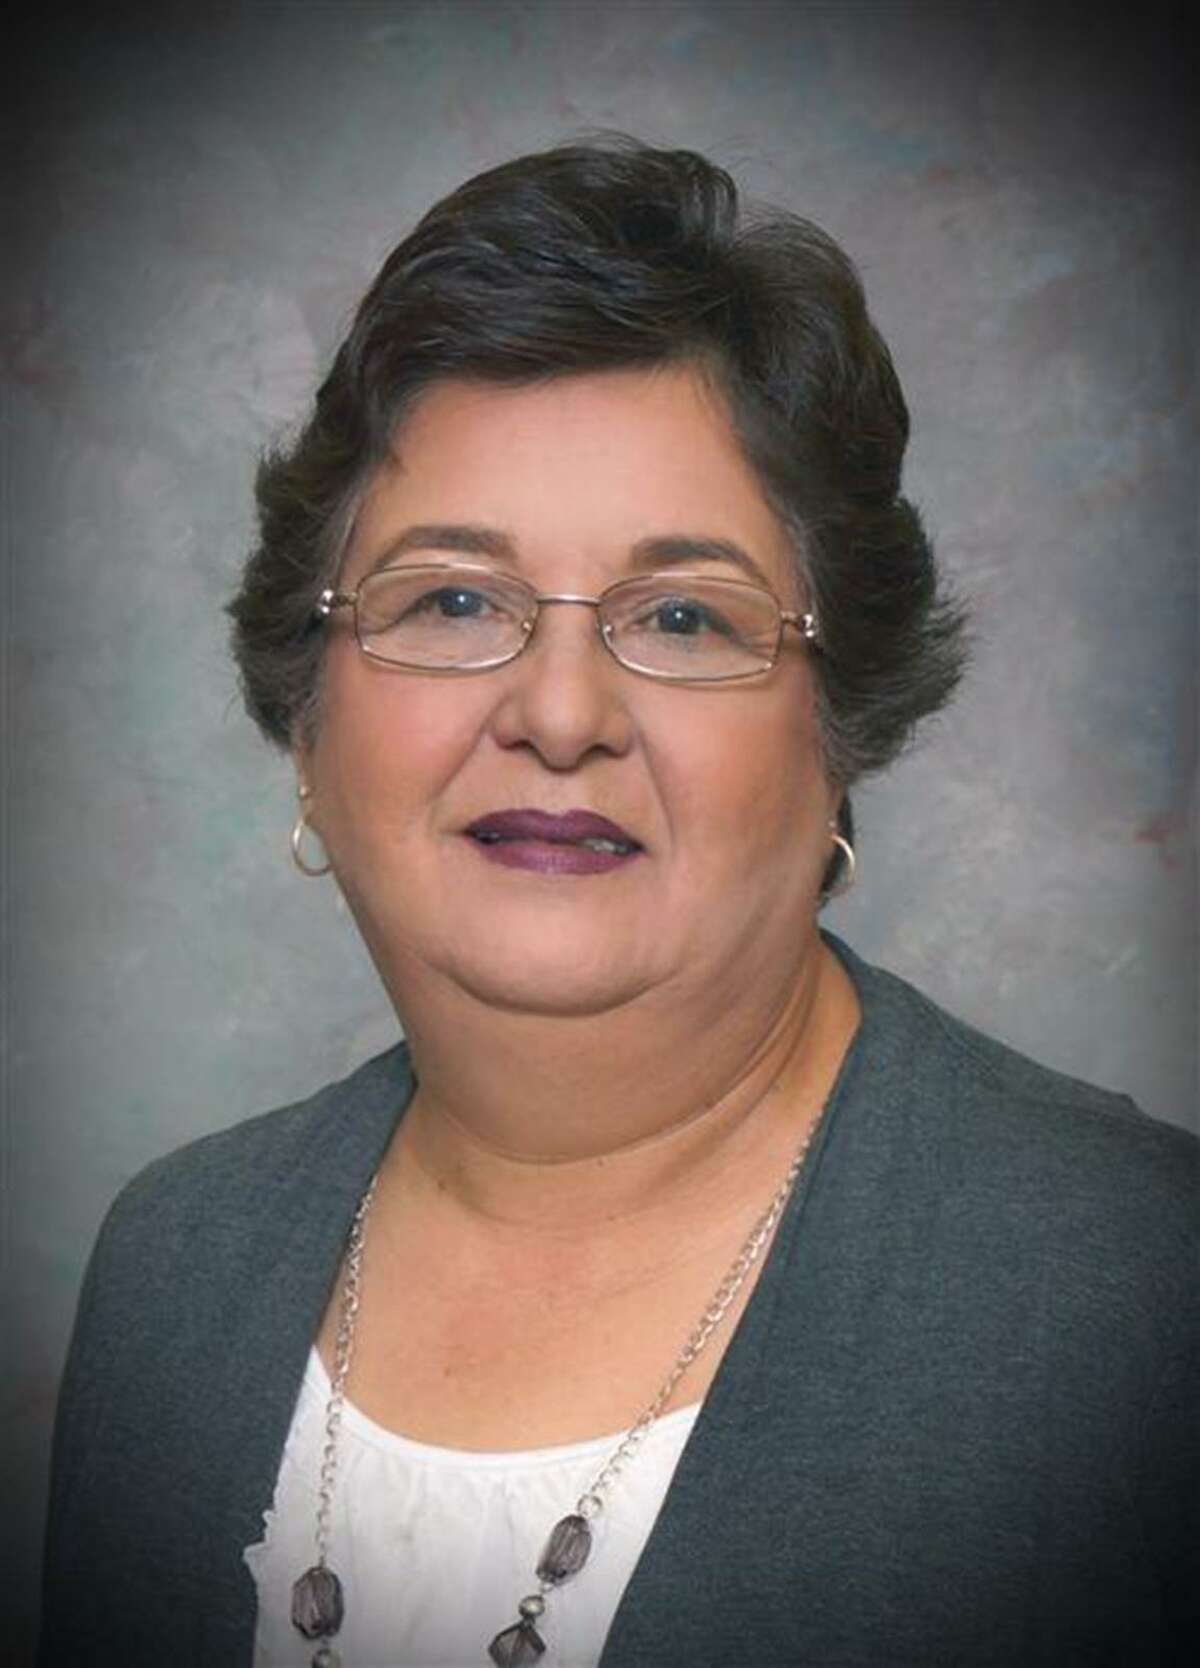 South San ISD trustee Linda Longoria resigned, without citing a reason, on Oct. 31, less than a year into her four-year term.